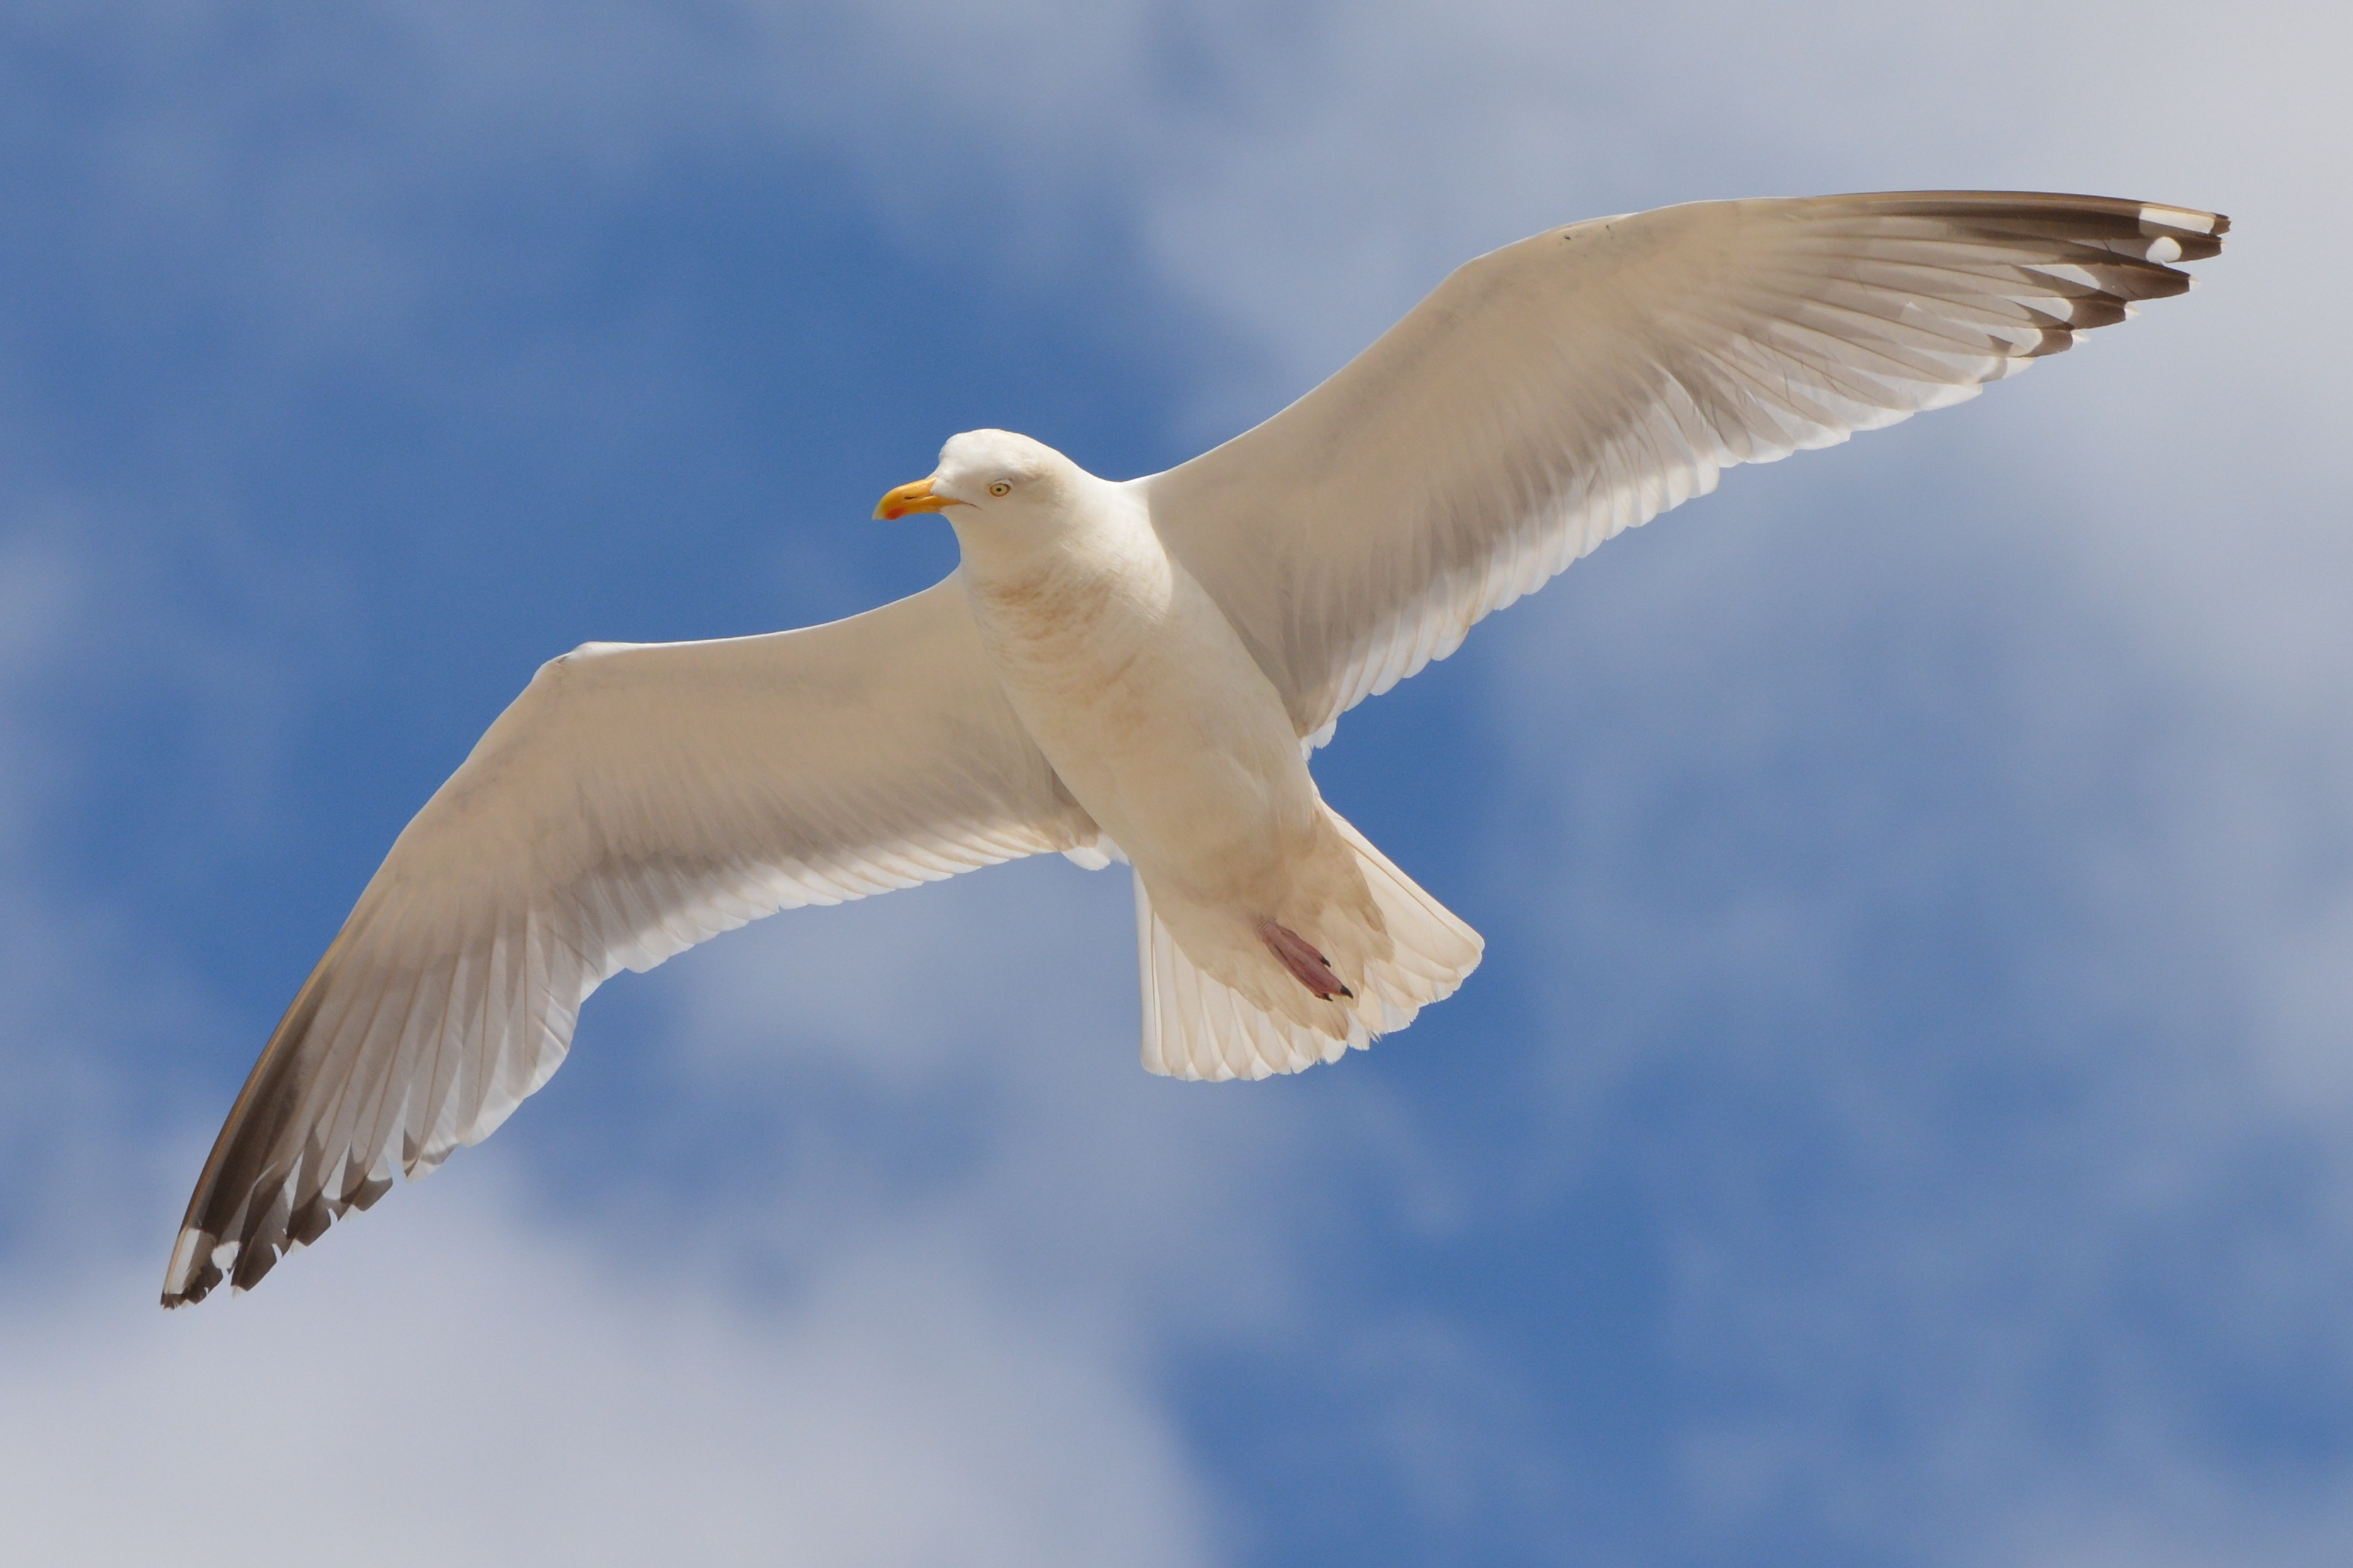 White Bird Flying Under The Blue And White Sky During Daytime 162292